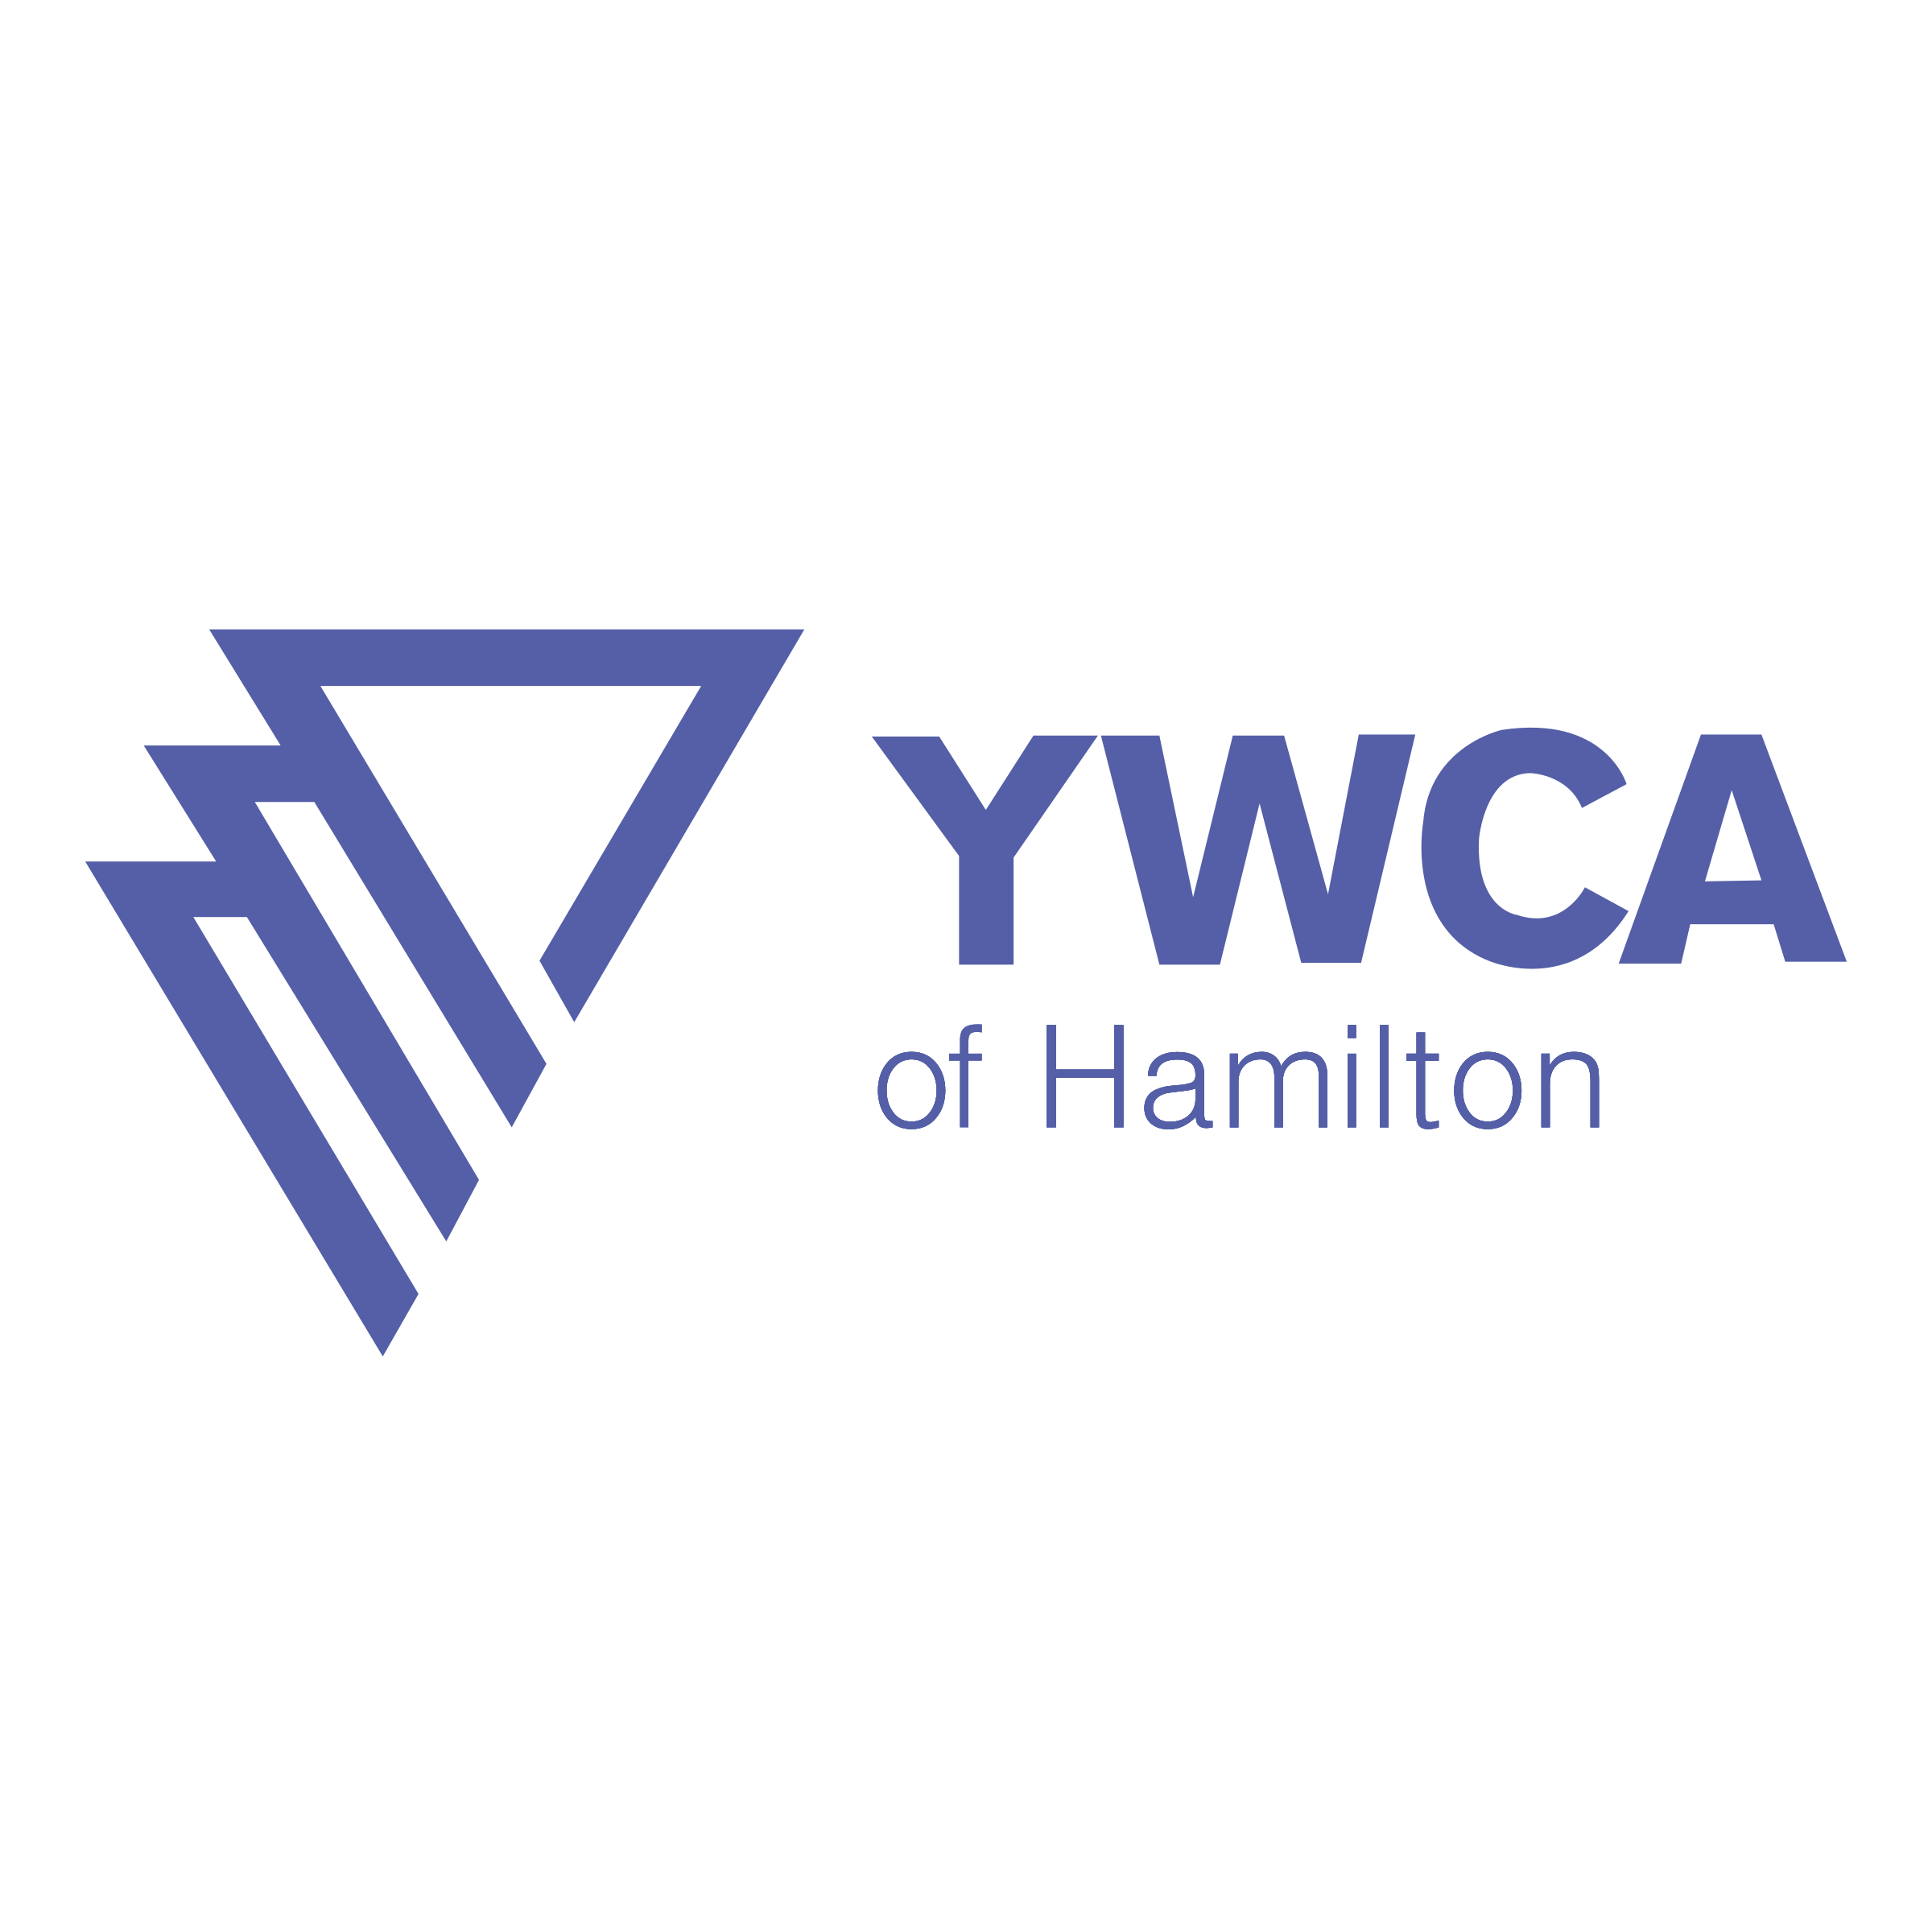 Hamilton vector svg. Ywca of logo png